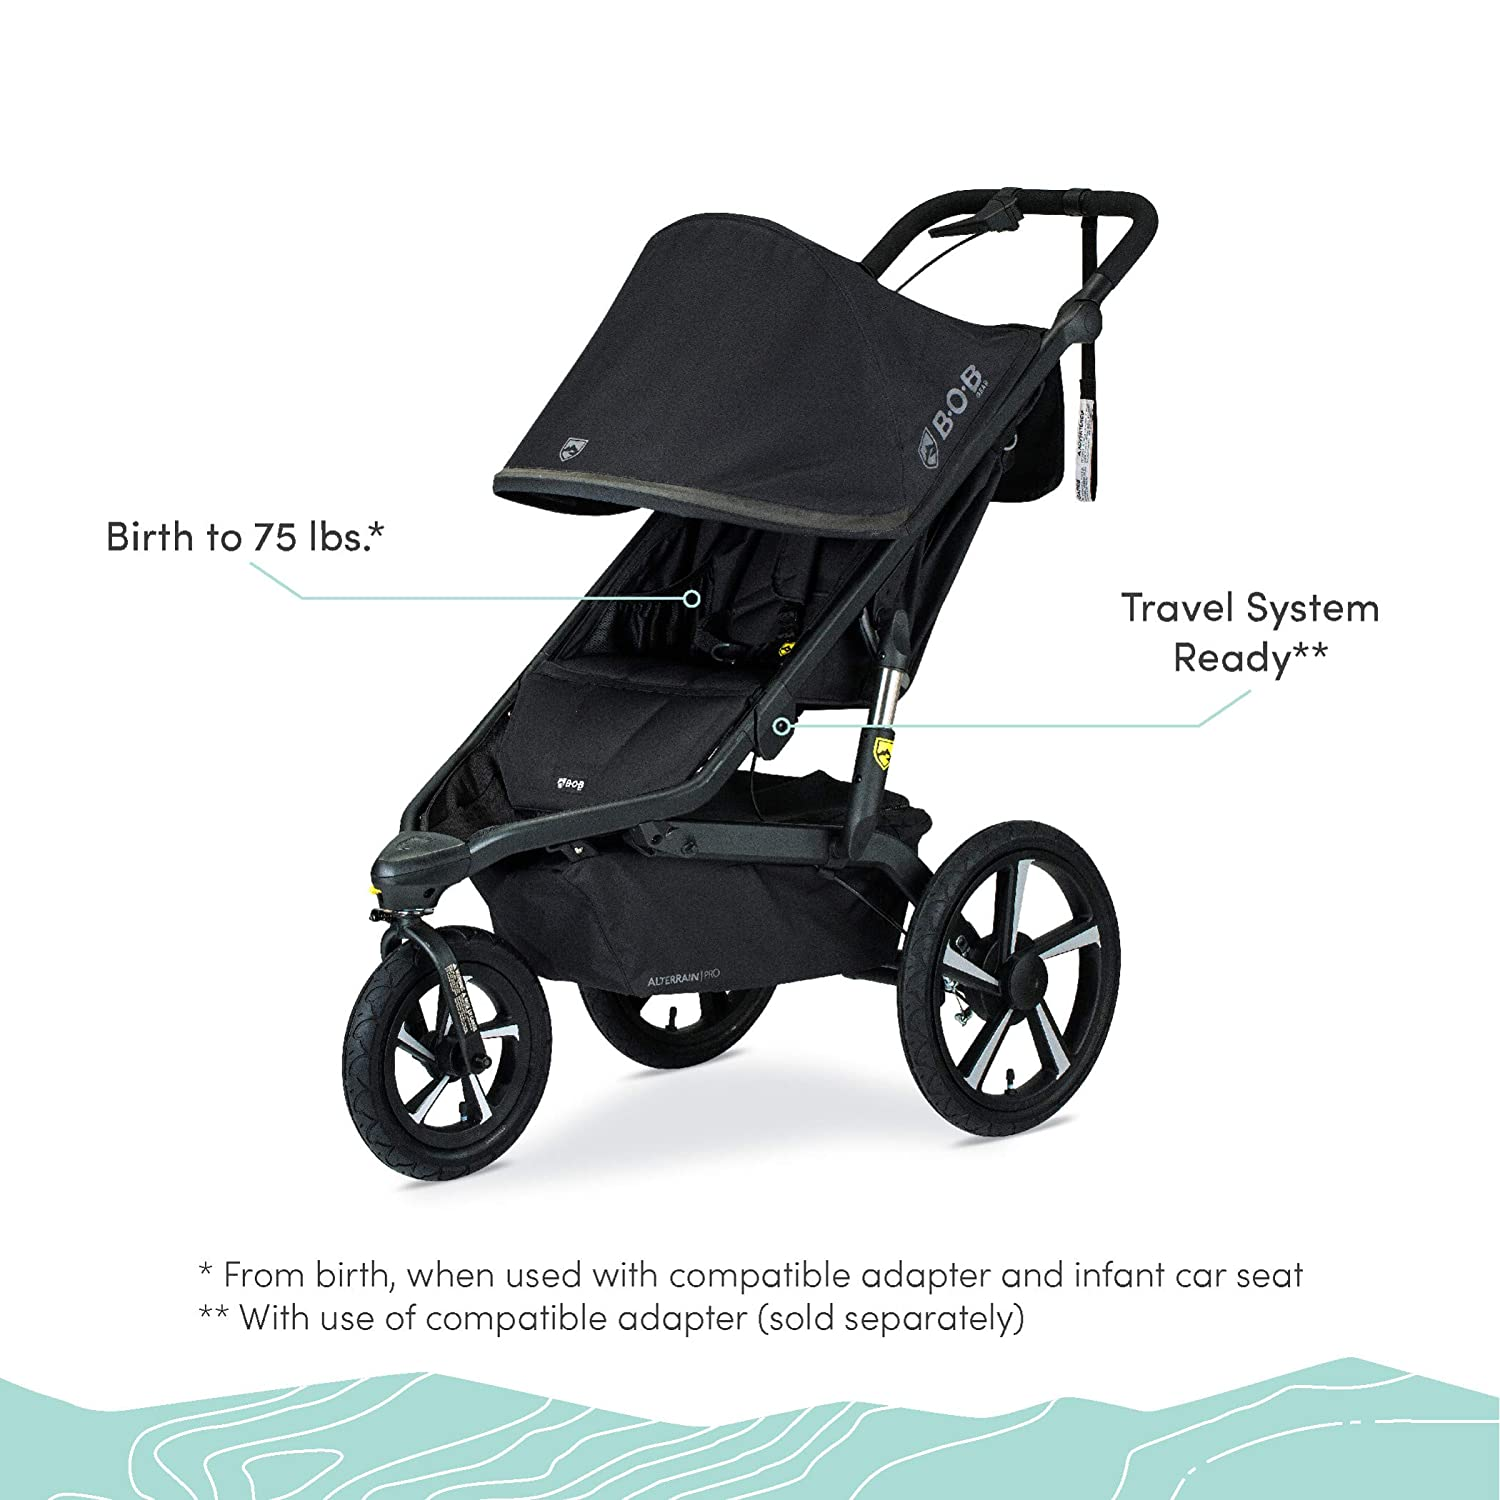 Amazon.com : BOB Gear Alterrain Pro Jogging Stroller | One-Hand Quick Fold  - Smoothshox + Airfilled Tires, Black : Baby